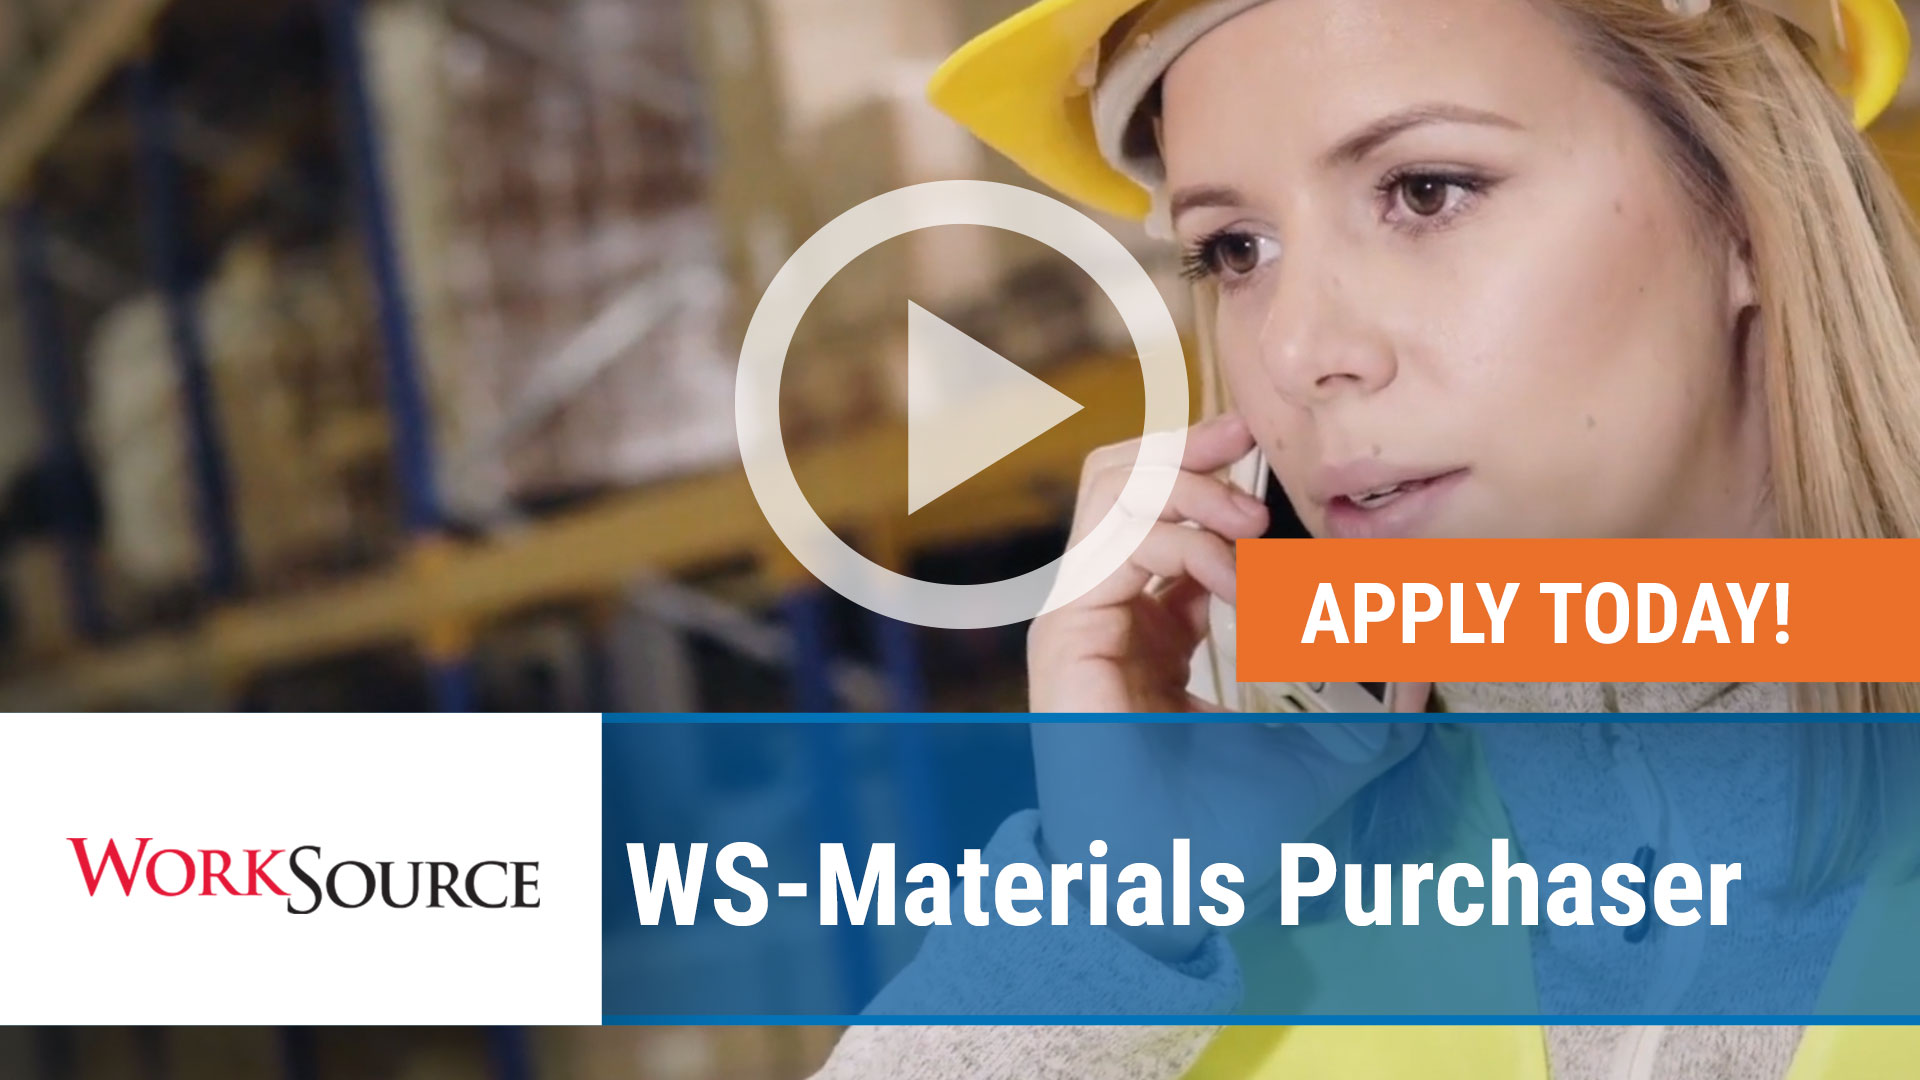 Watch our careers video for available job opening WS Materials Purchaser in Russellville, Arkansas